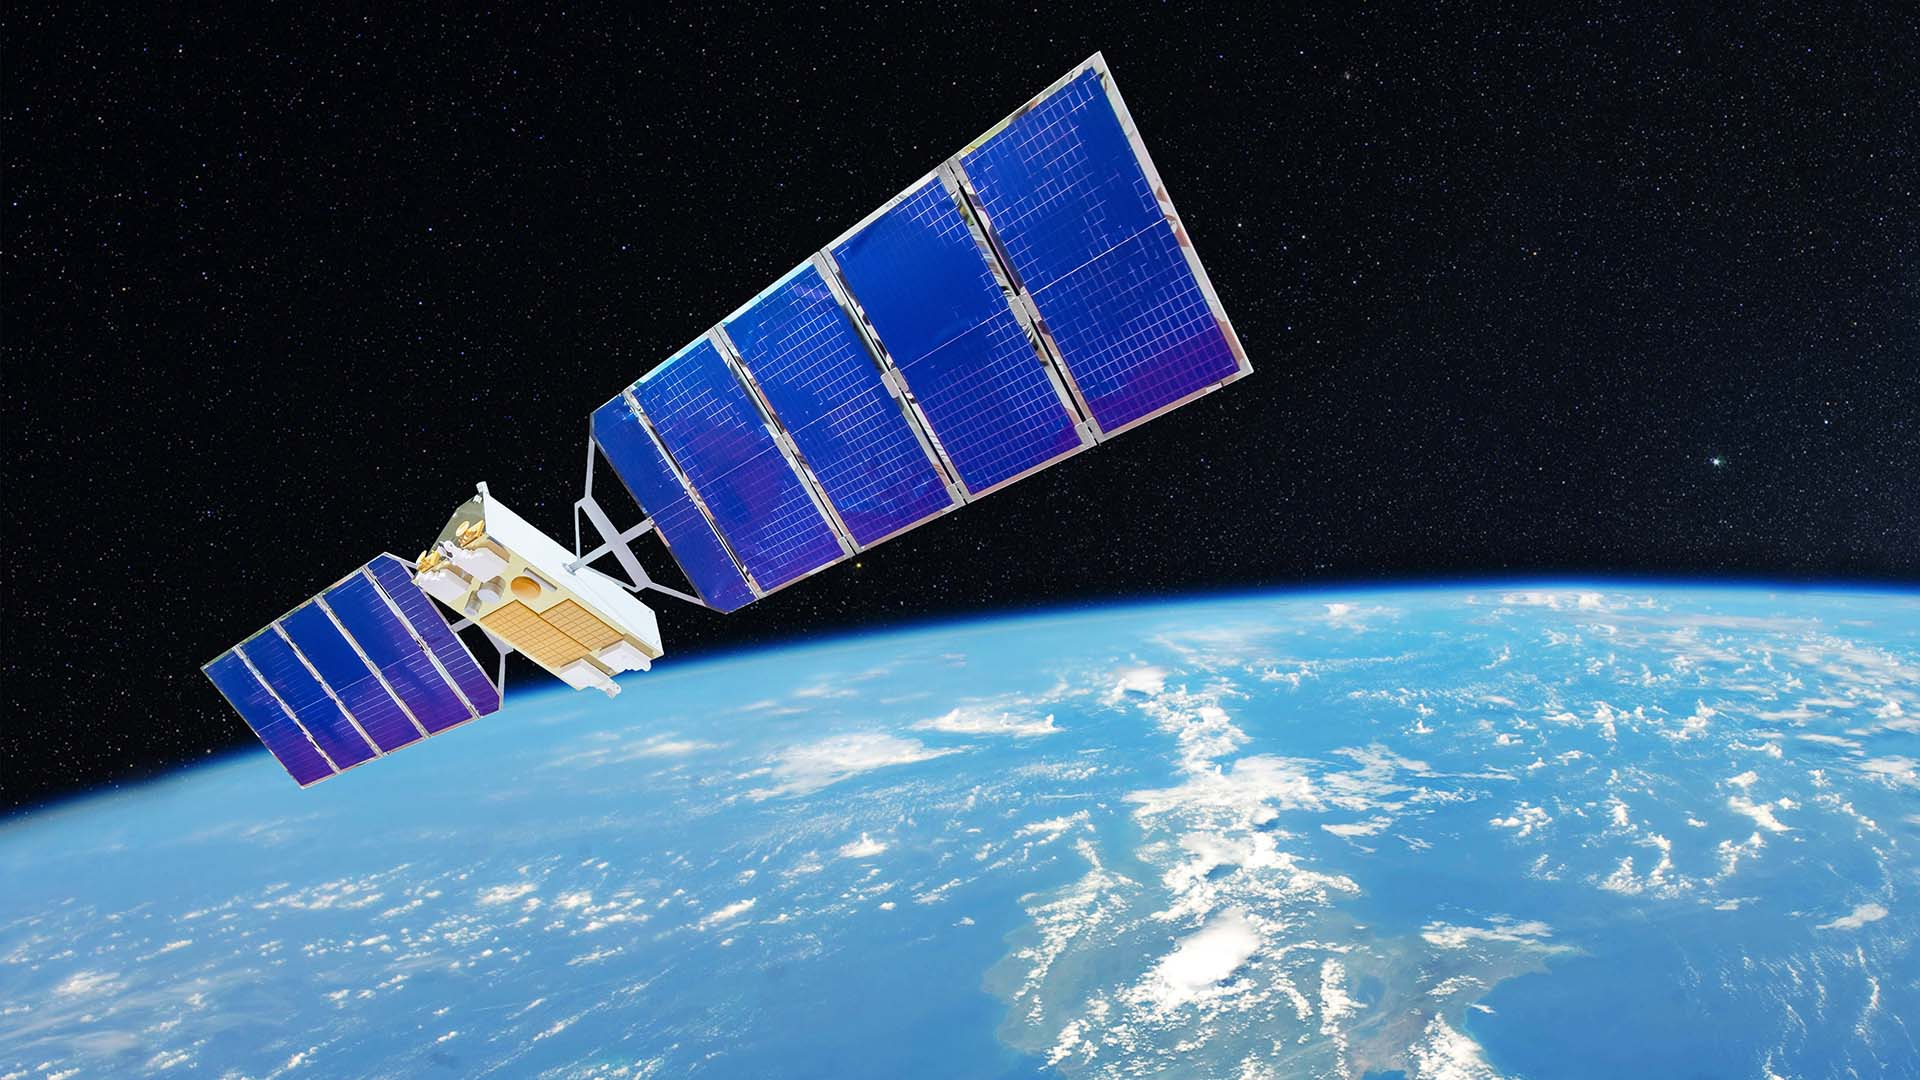 Stock image of a satellite flying above earth (credit: aapsky/Shutterstock)